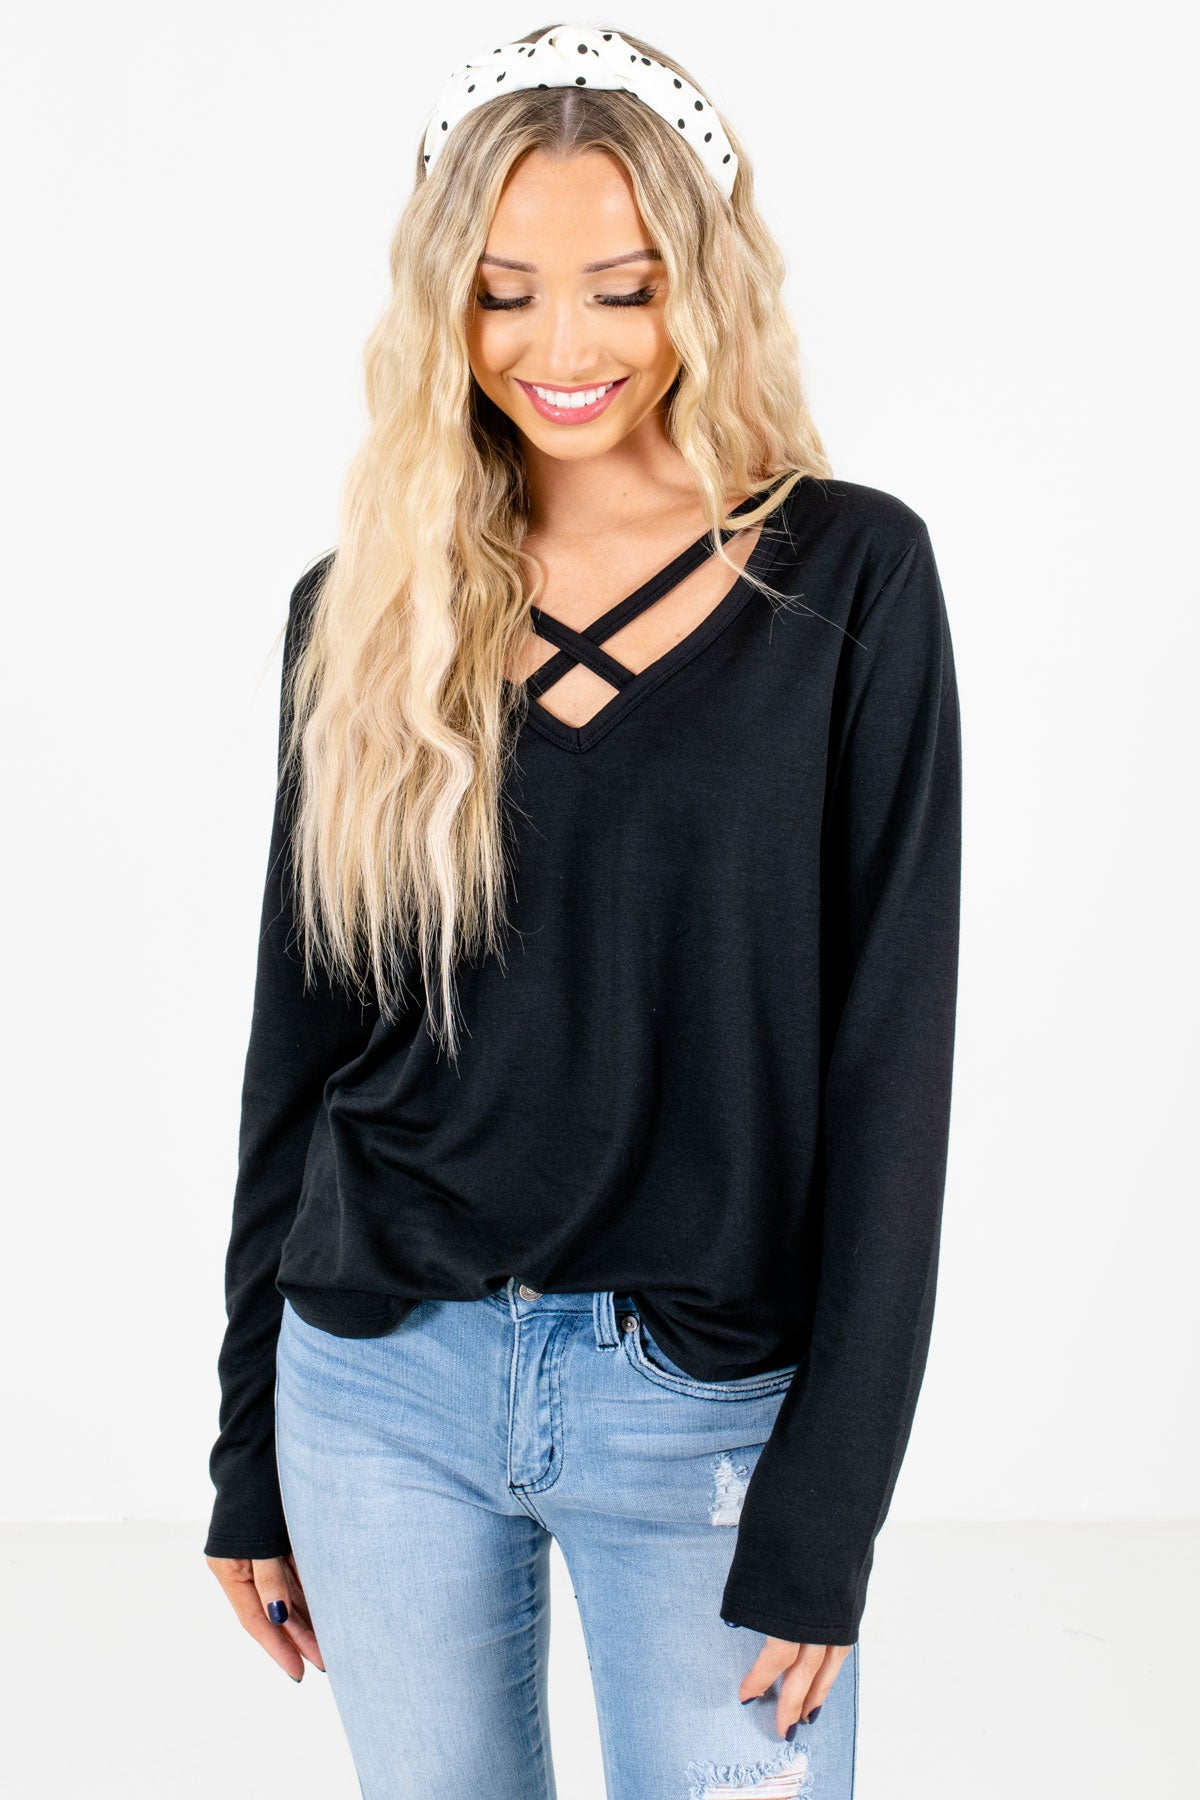 Black Criss-Cross V-Neckline Boutique Tops for Women